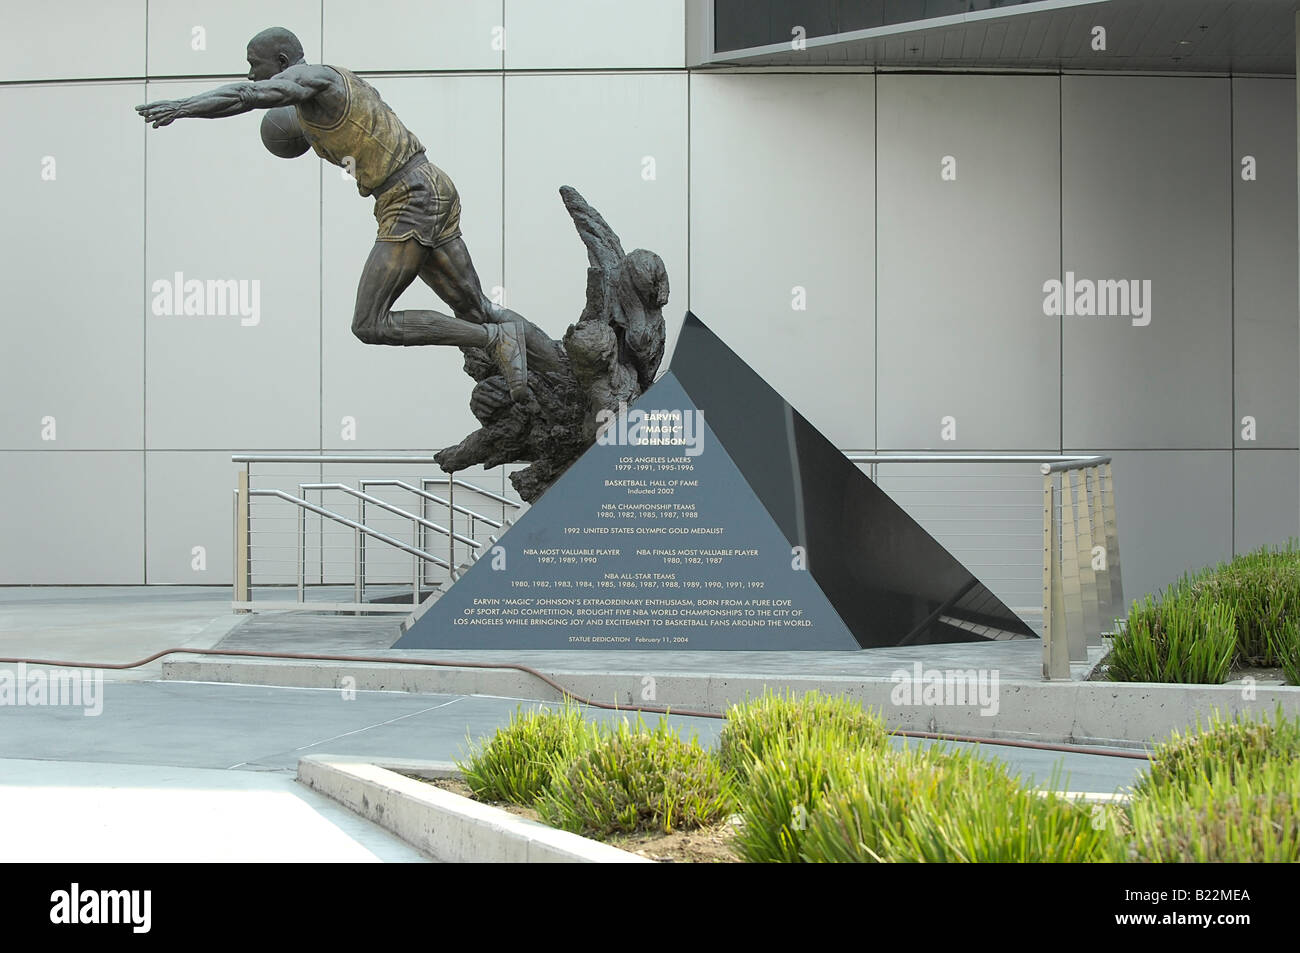 Magic Johnson Statue Staples Center